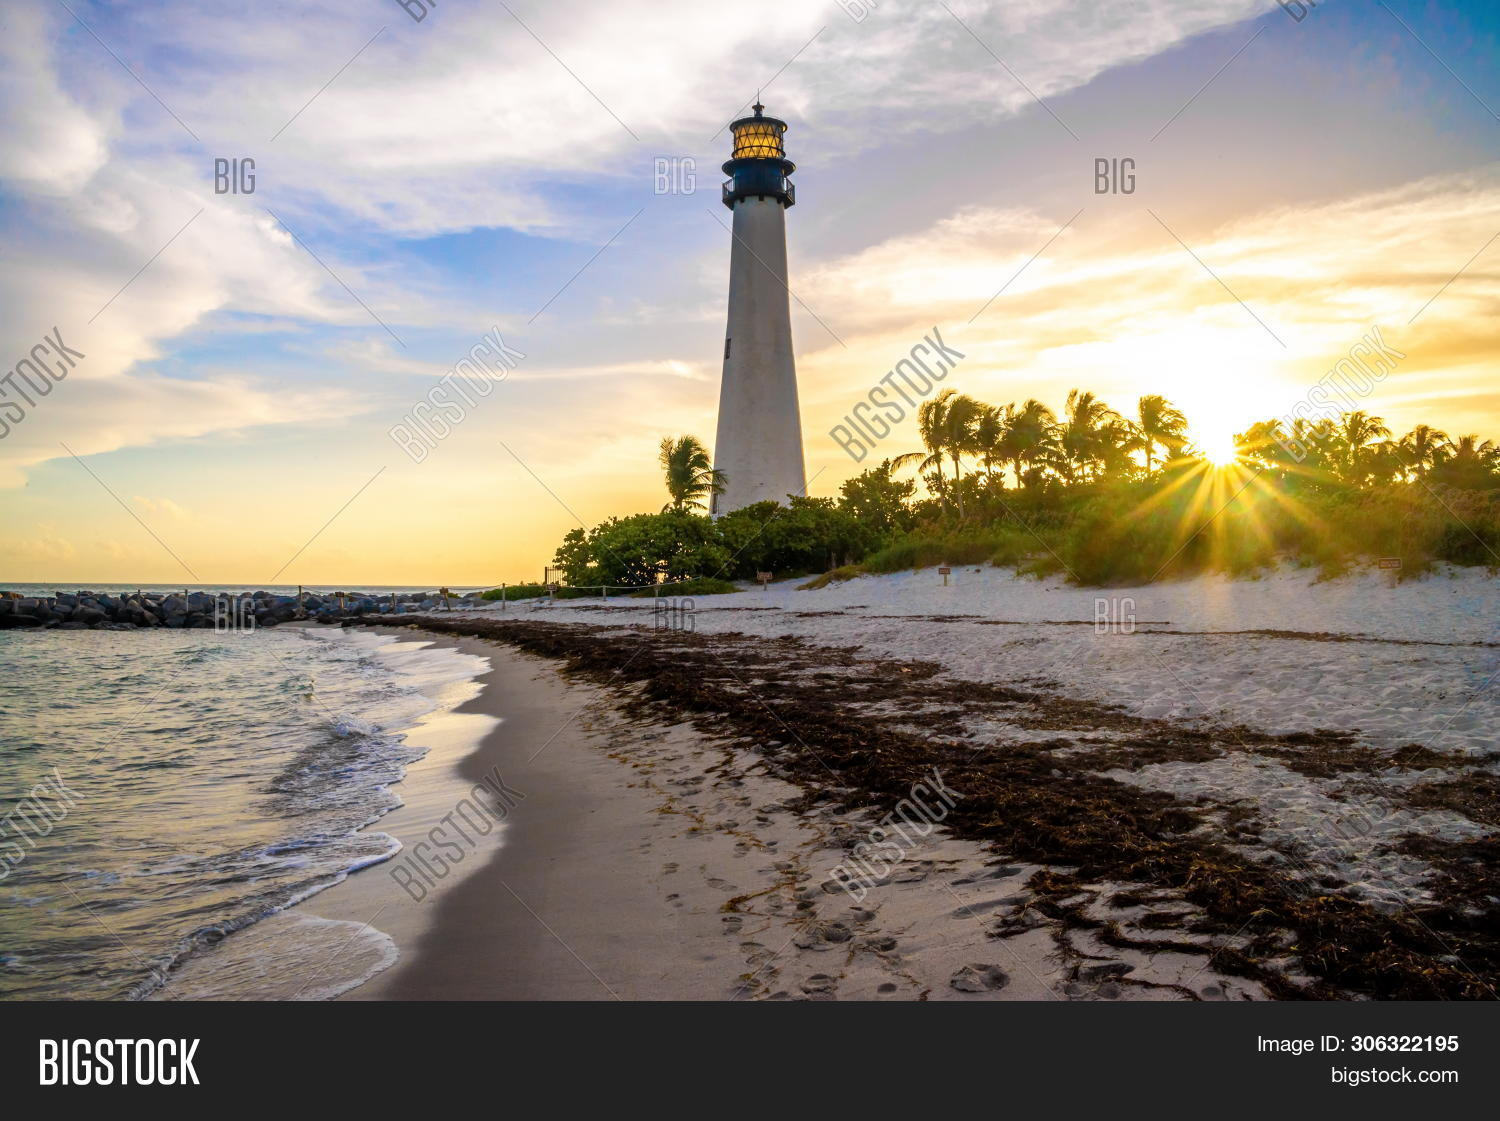 america,architecture,atlantic,beach,beacon,biscayne,blue,bright,building,cape,coast,coastline,exterior,florida,guidance,historic,historical,key,landmark,lantern,light,lighthouse,miami,navigation,ocean,old,outdoor,outside,palm,palmtree,park,sand,sandy,sea,security,sky,structure,sunset,symbol,tower,travel,tree,united,usa,vacation,white